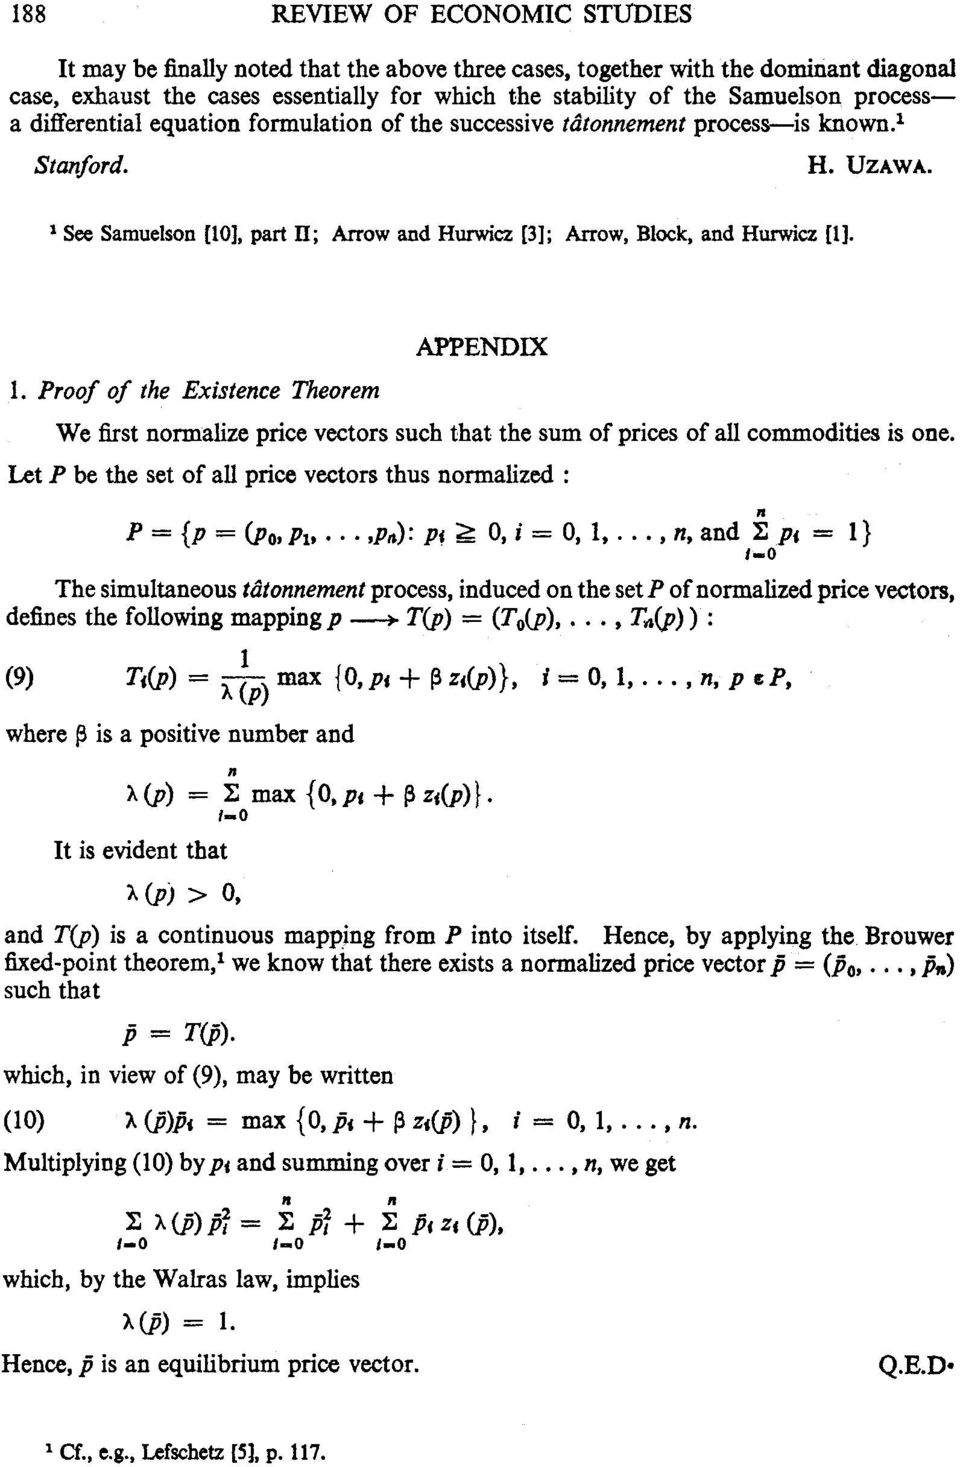 Proof of the Existece Theorem APPENDIX We first ormalize price vectors such that the sum of prices of all commodities is oe. Let P be the set of all price vectors thus ormalized: P ={p = (Po,P1,.